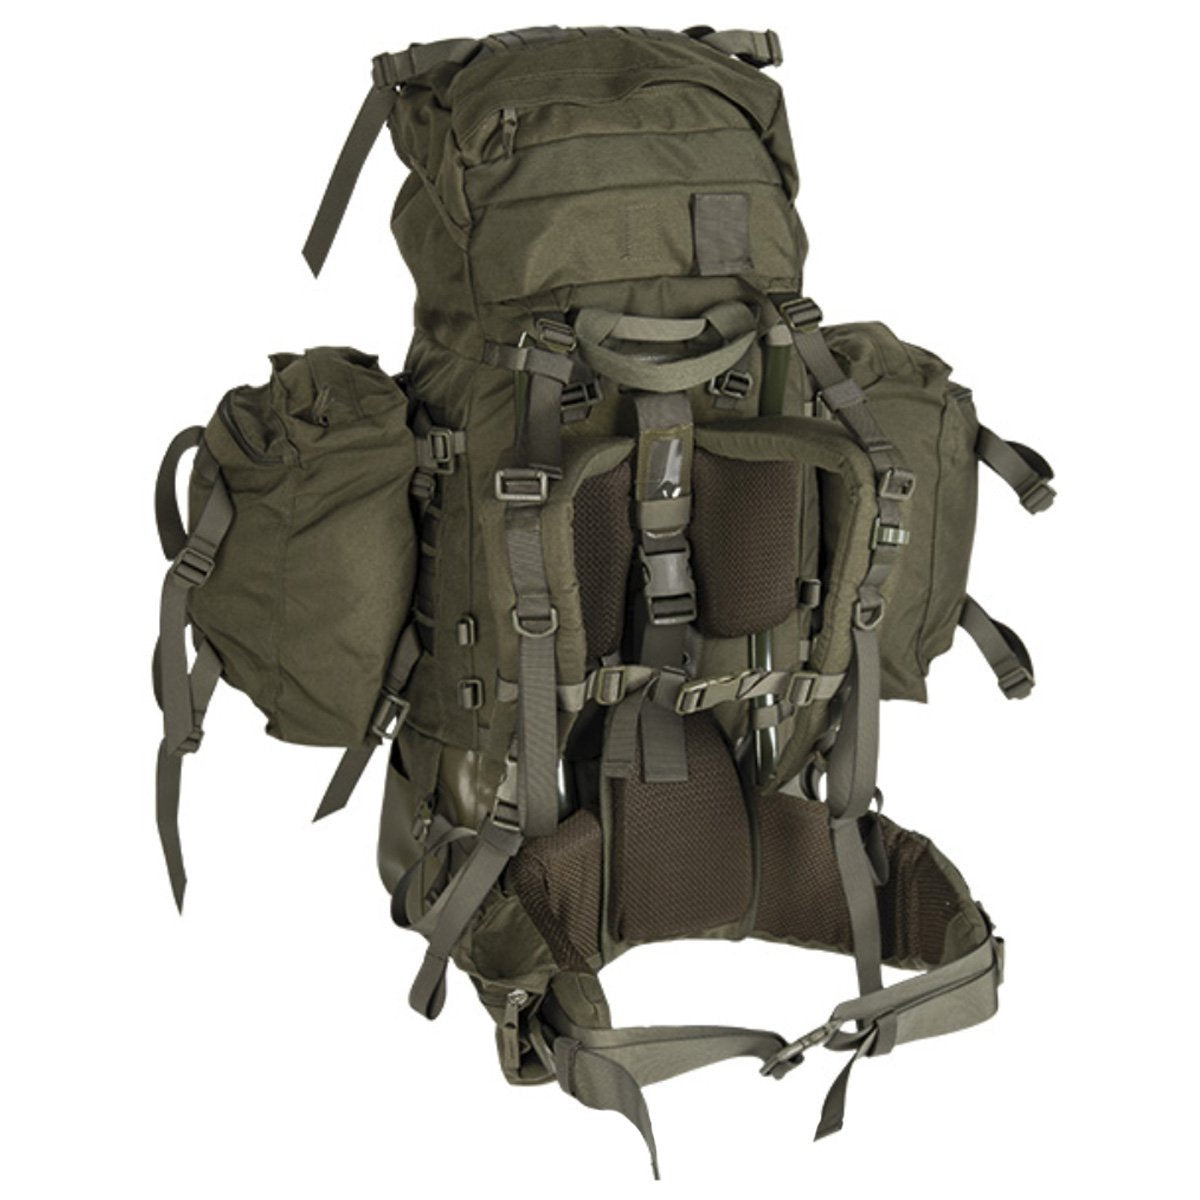 Teesar Backpack 100L | UKMCPro